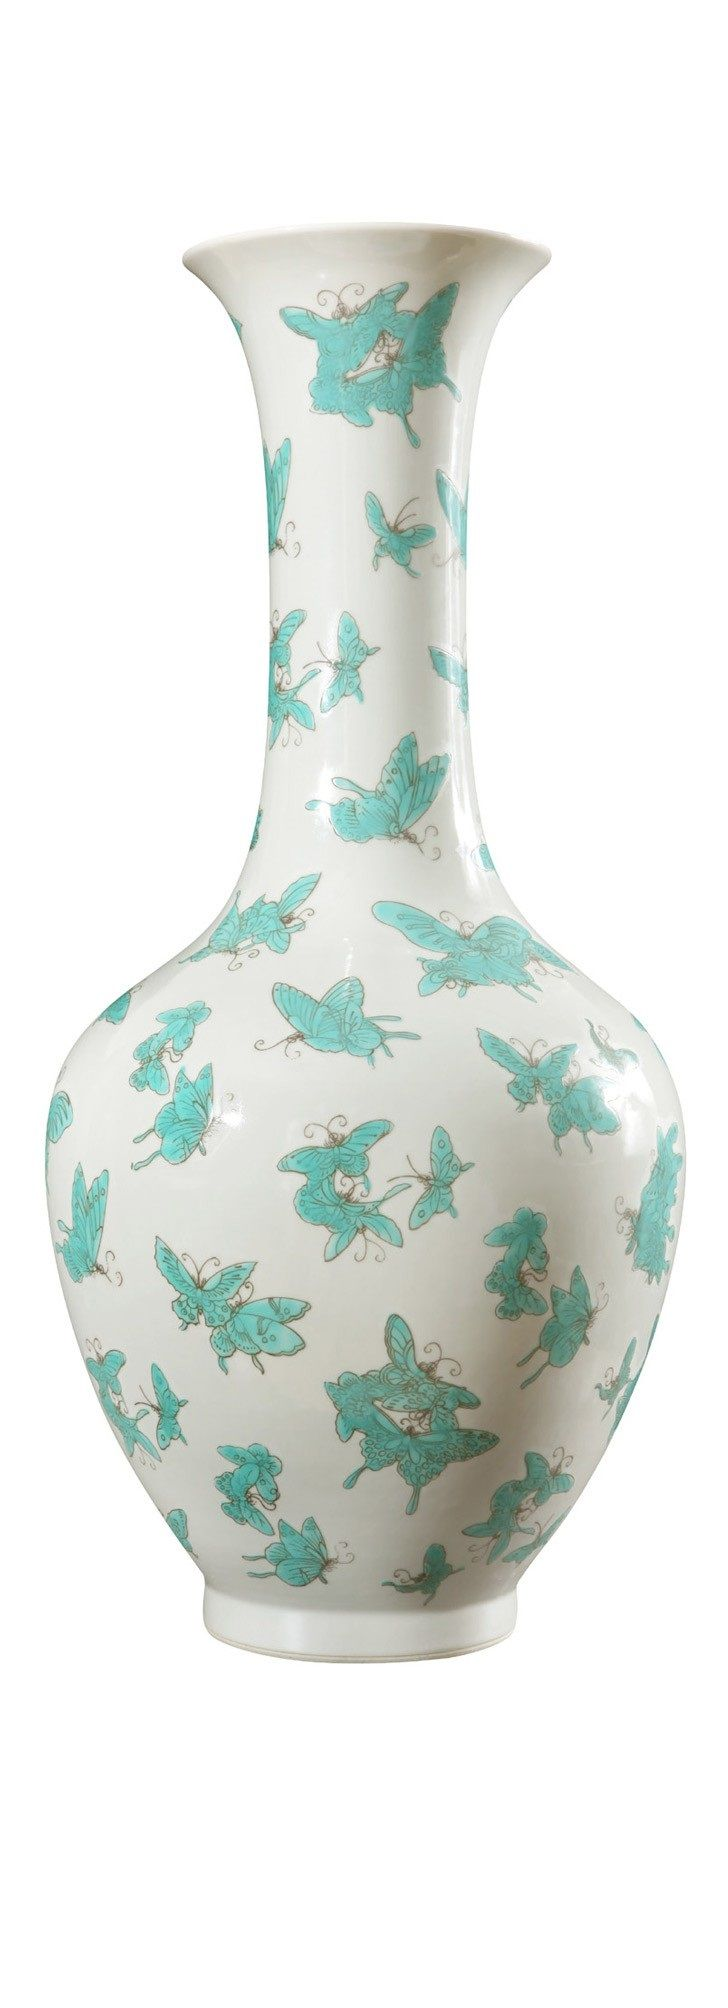 u0026quotbeautiful vases u0026quot by instyle